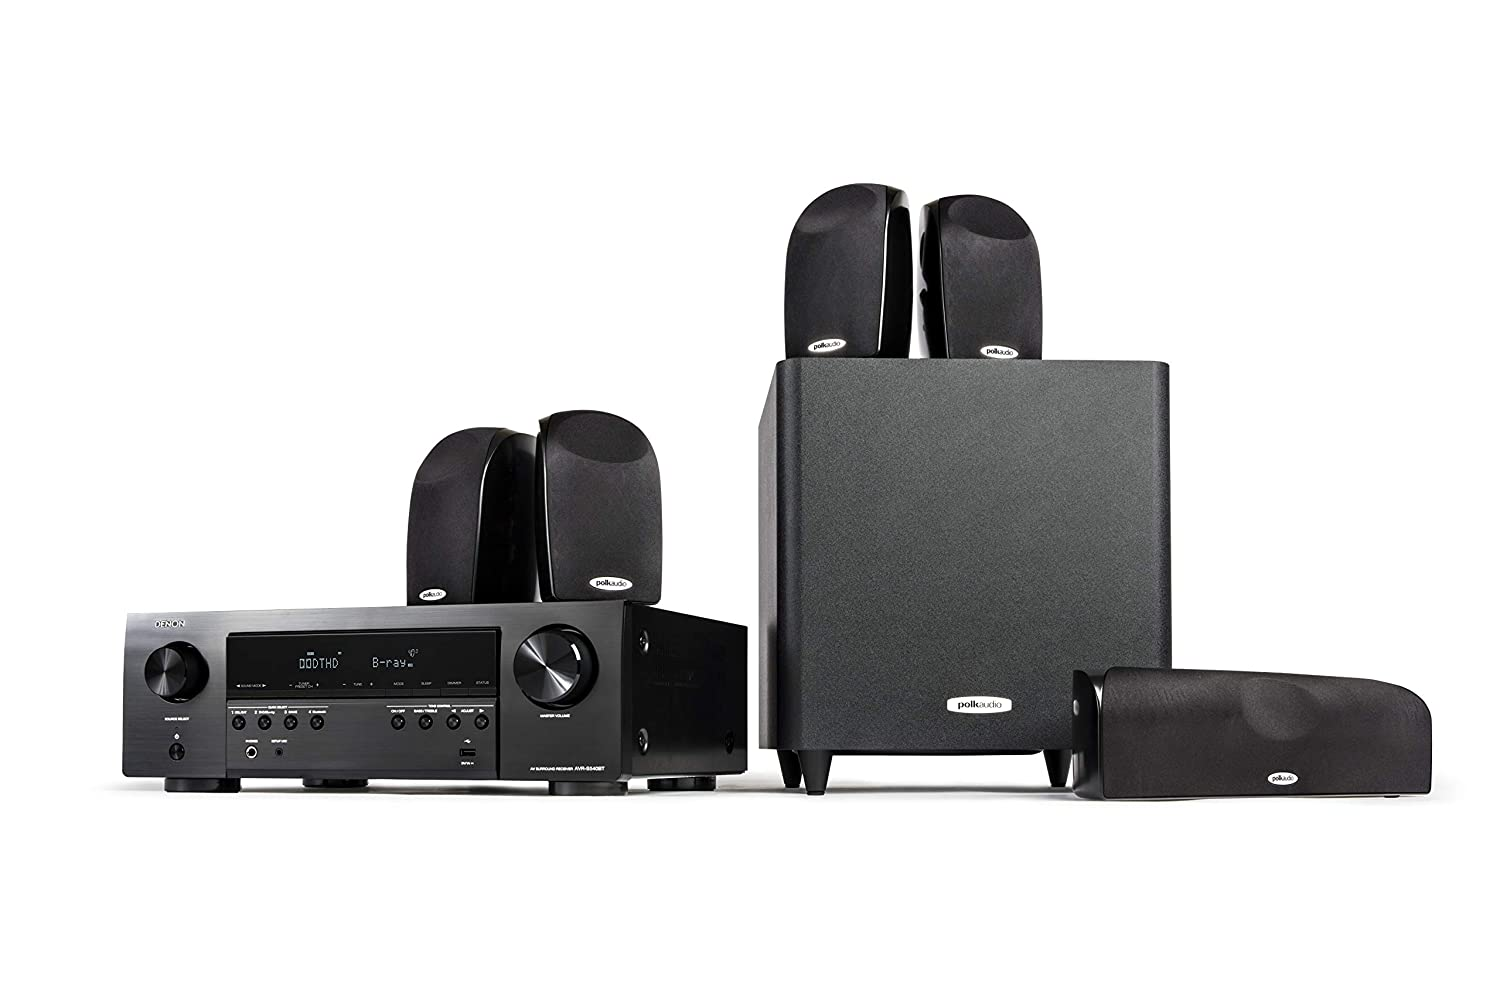 """Polk Audio Blackstone TL1600 5.1 Channel Compact Home Theater System with Denon AVR-S540BT Receiver 